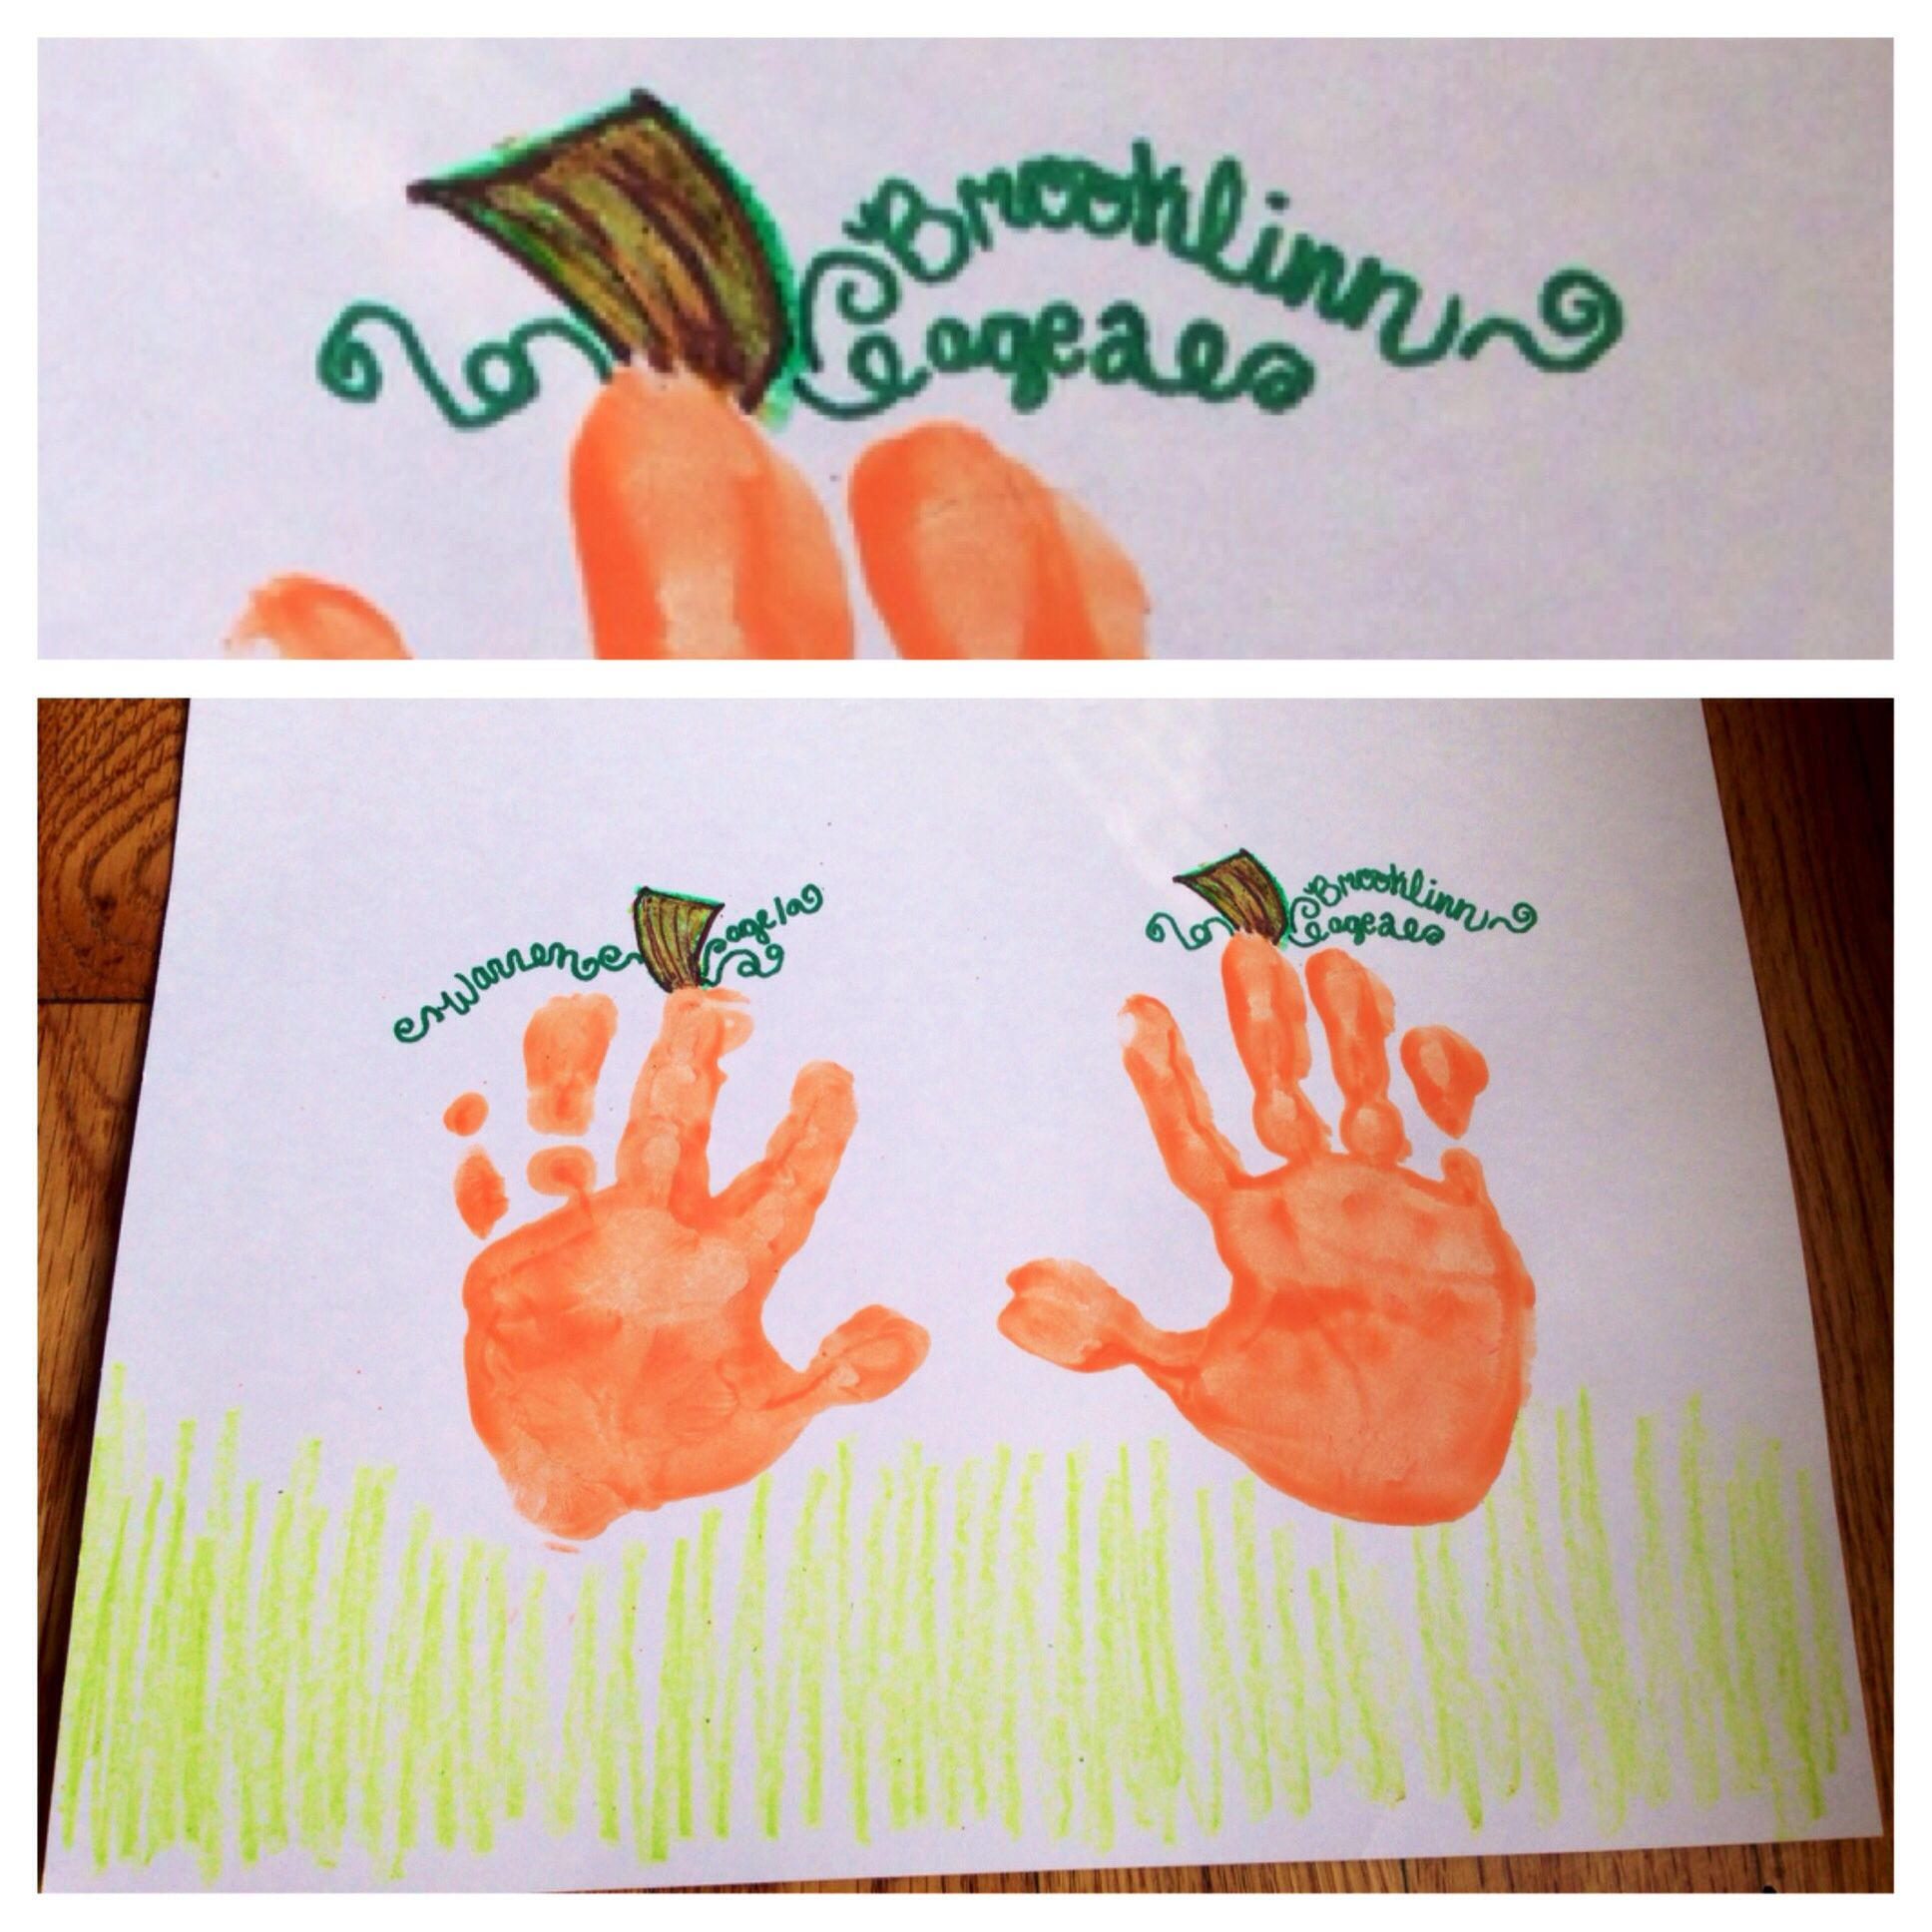 Pumpkin Craft Ideas For Kids Part - 25: Fall Pumpkin Handprint Craft For Kids - Write Their Names And Ages In The  Vines :